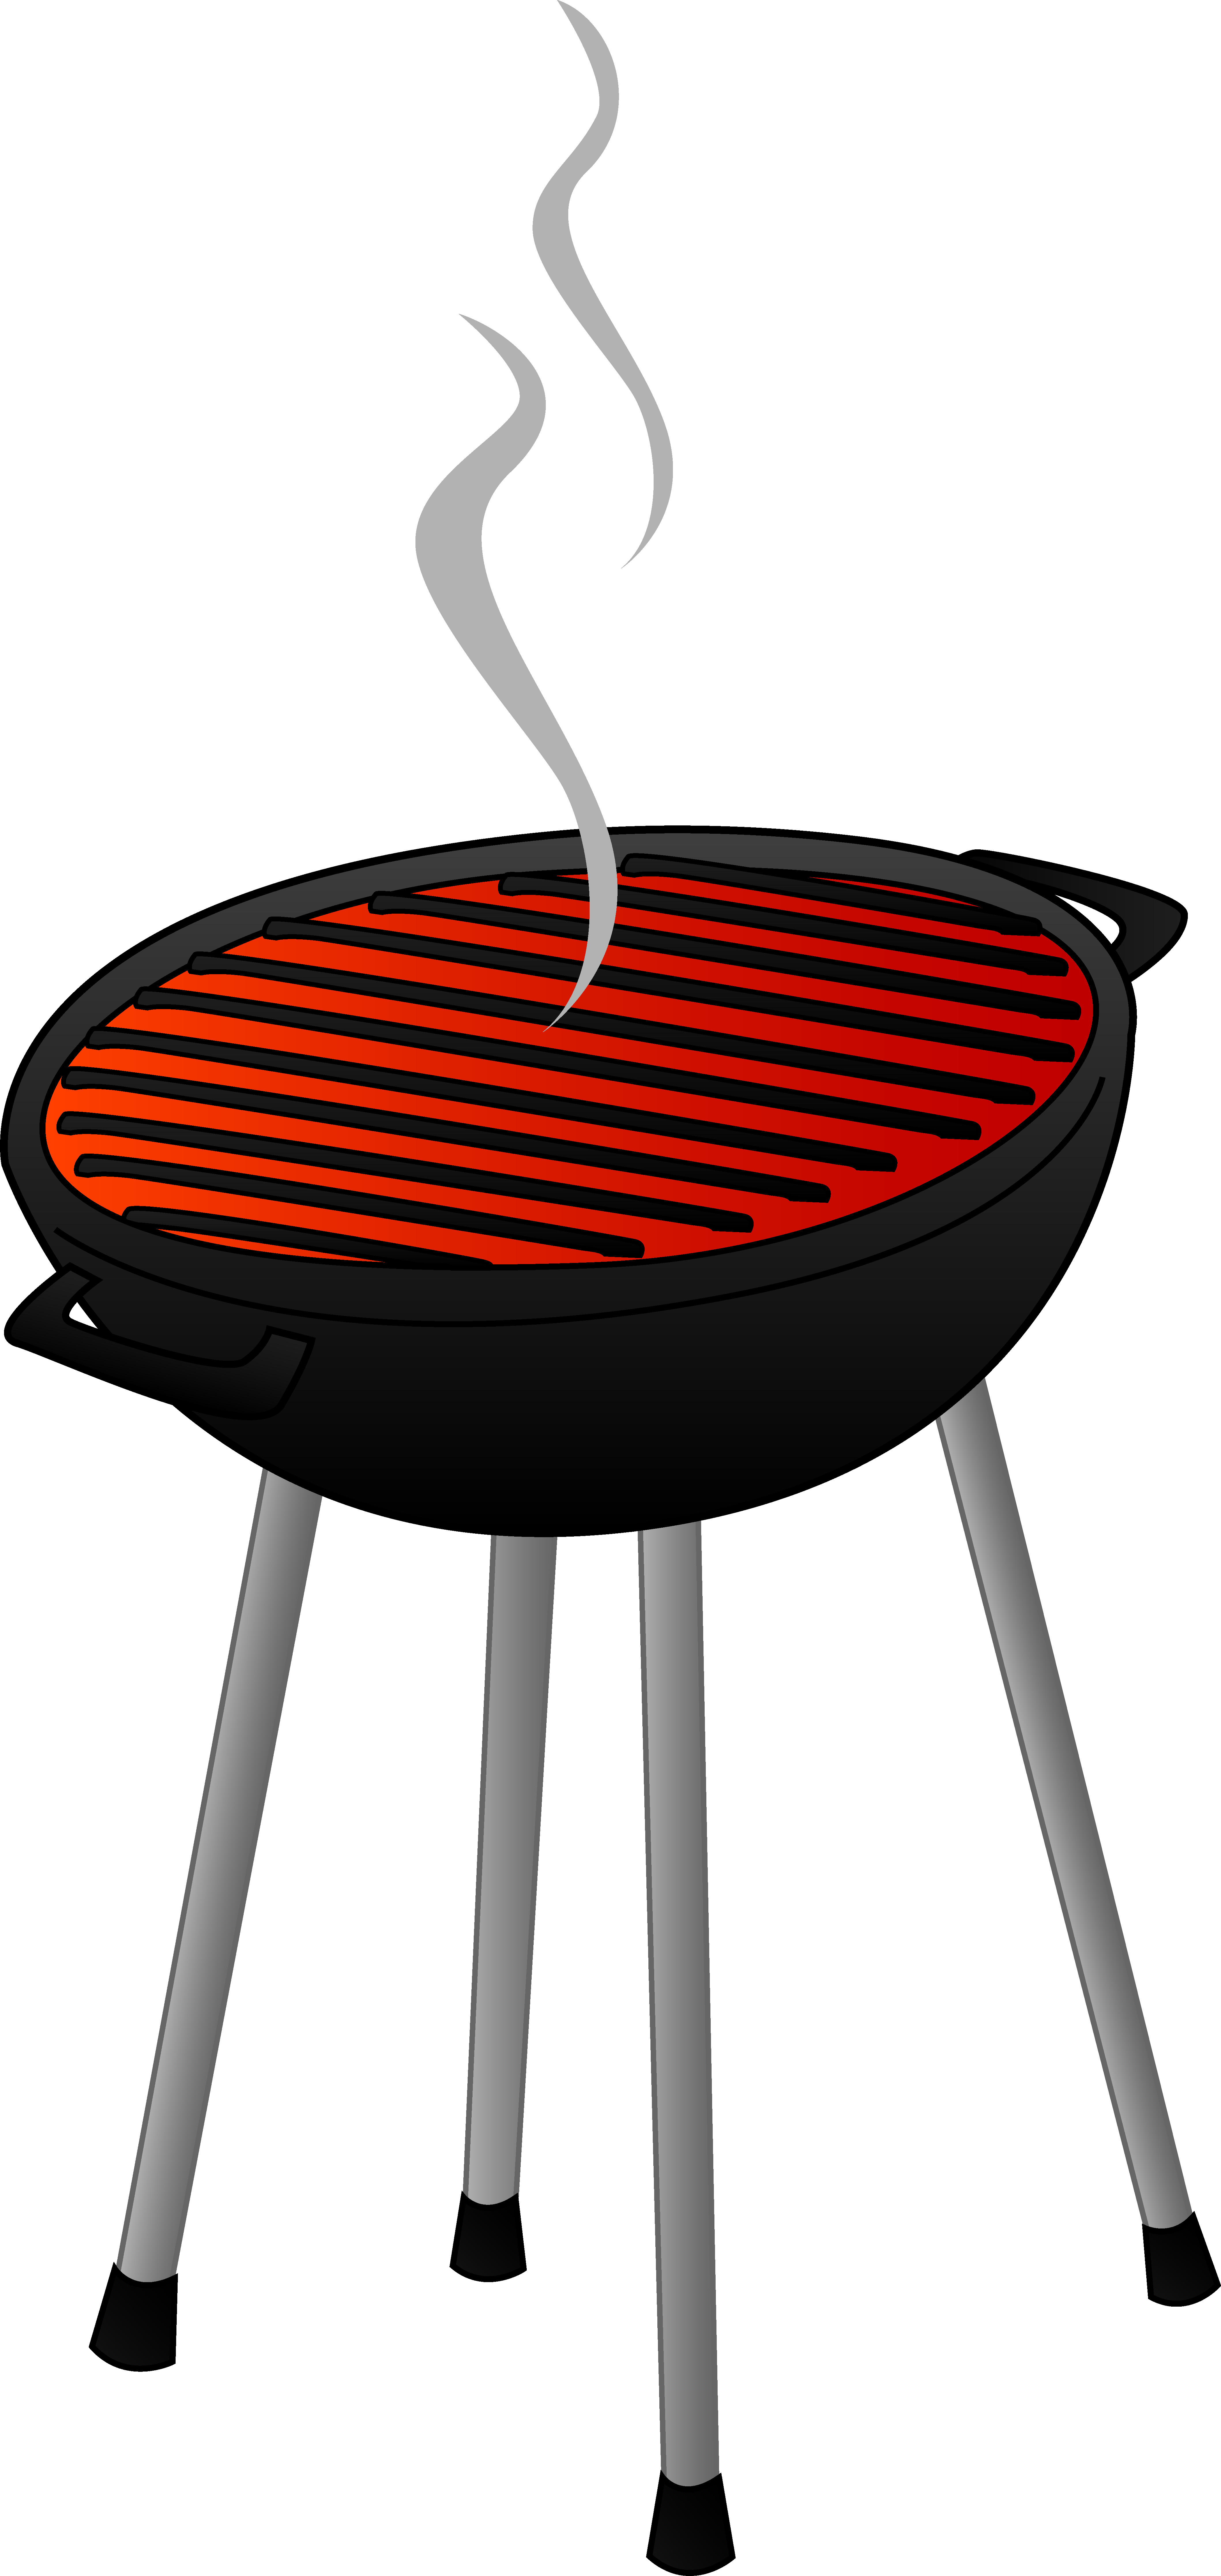 Grill pictures clipart banner royalty free stock Free grill clipart 4 » Clipart Portal banner royalty free stock